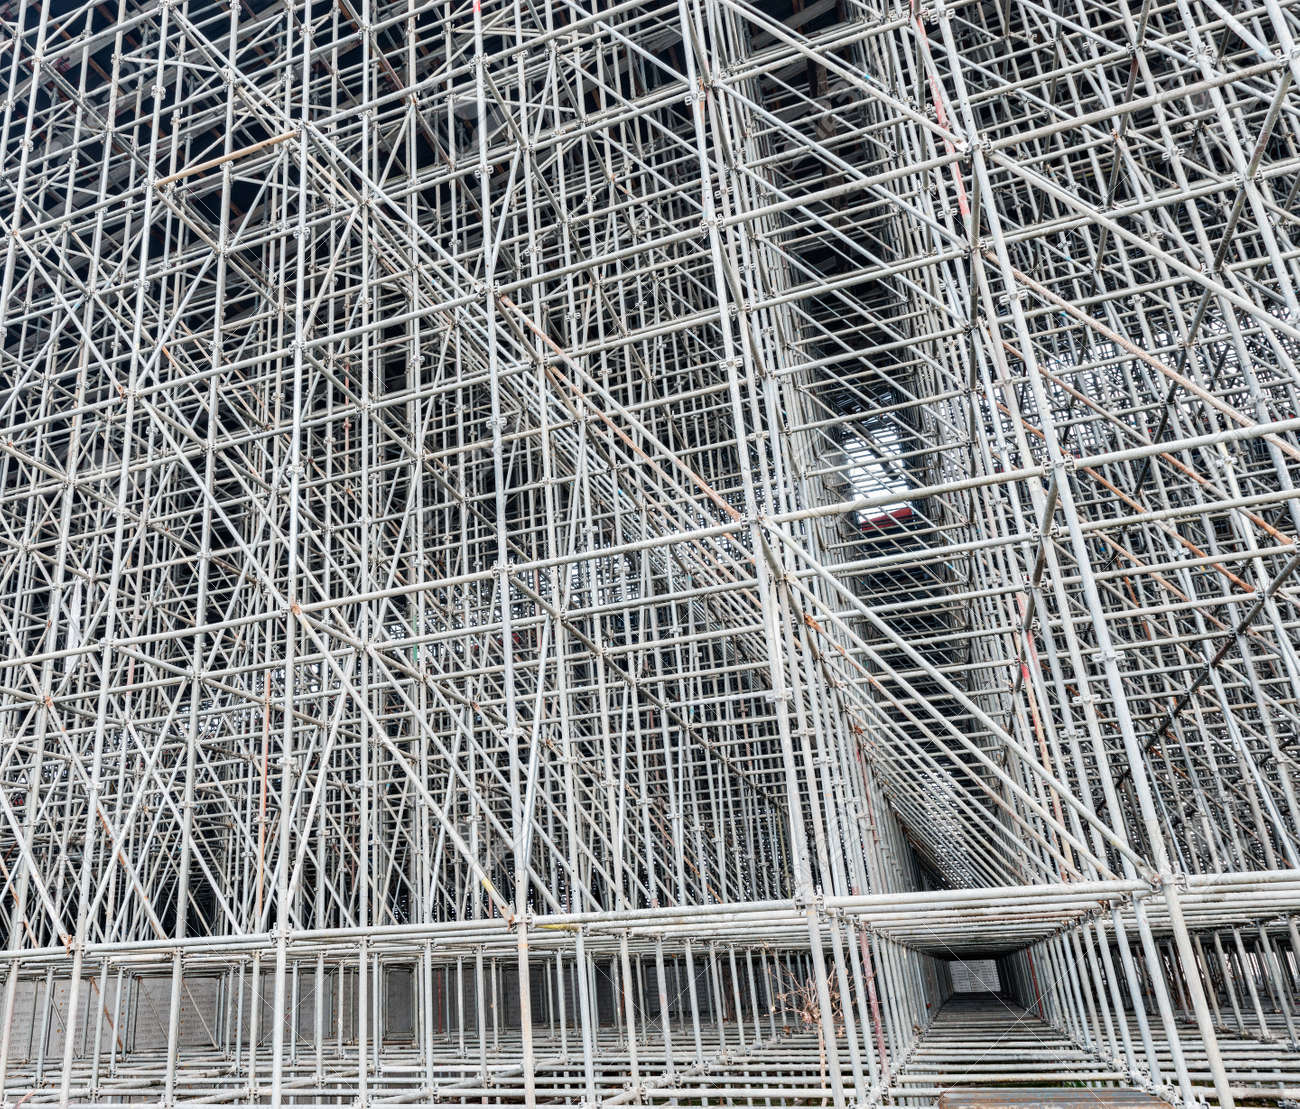 Vertical scaffolding formed a myriad of grid. Industrial and modern urban construction background. - 122283406